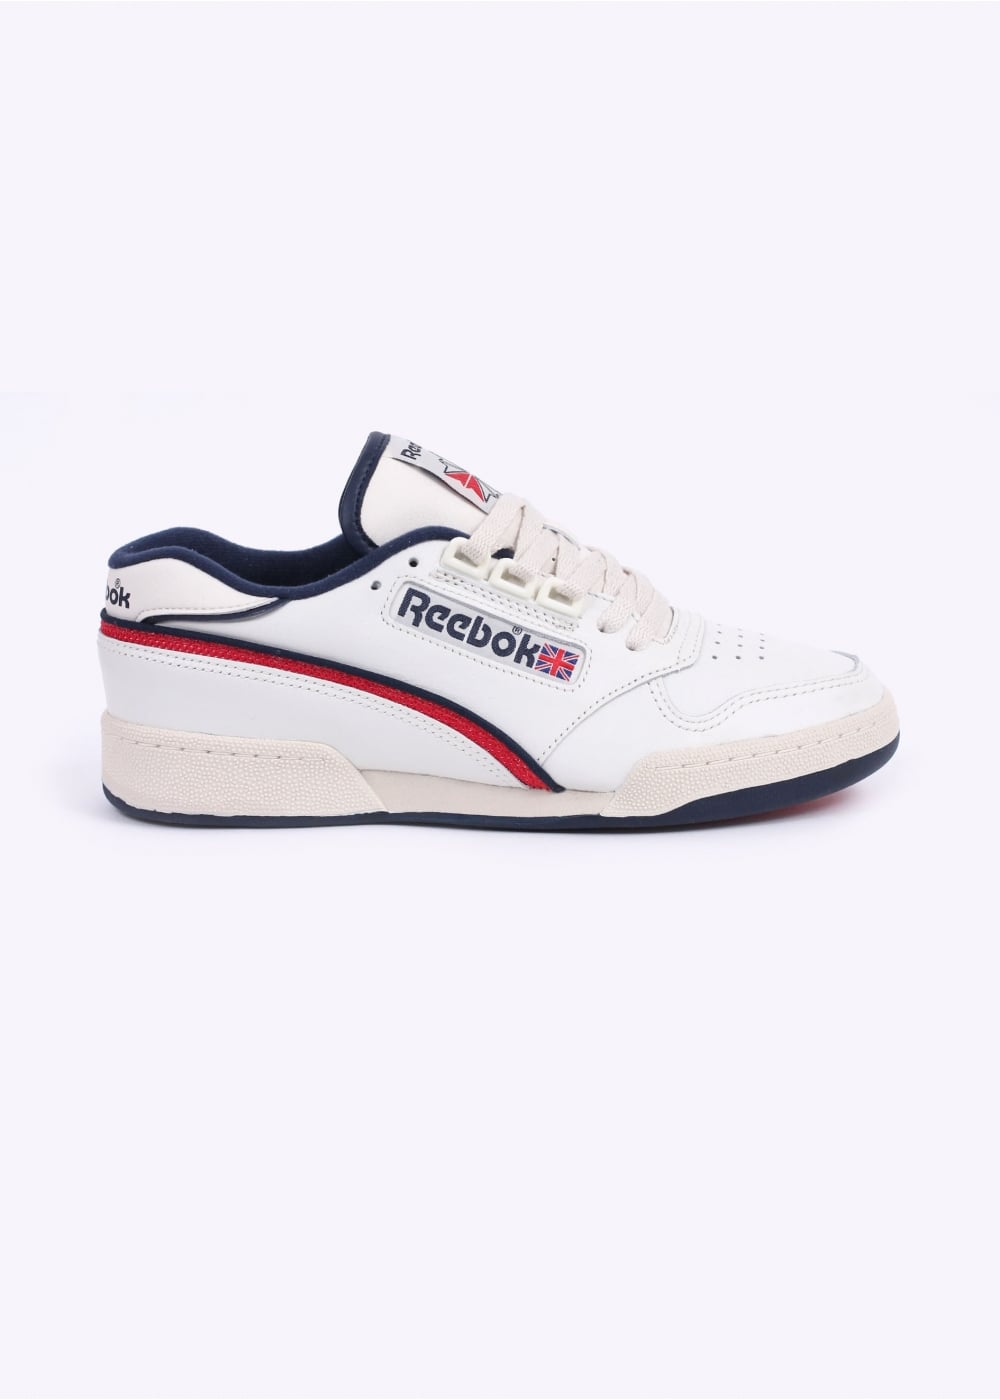 c0e39c27c380 Reebok Act 600 85 Trainers - Chalk   PaperWhite   Excellent Red   Navy